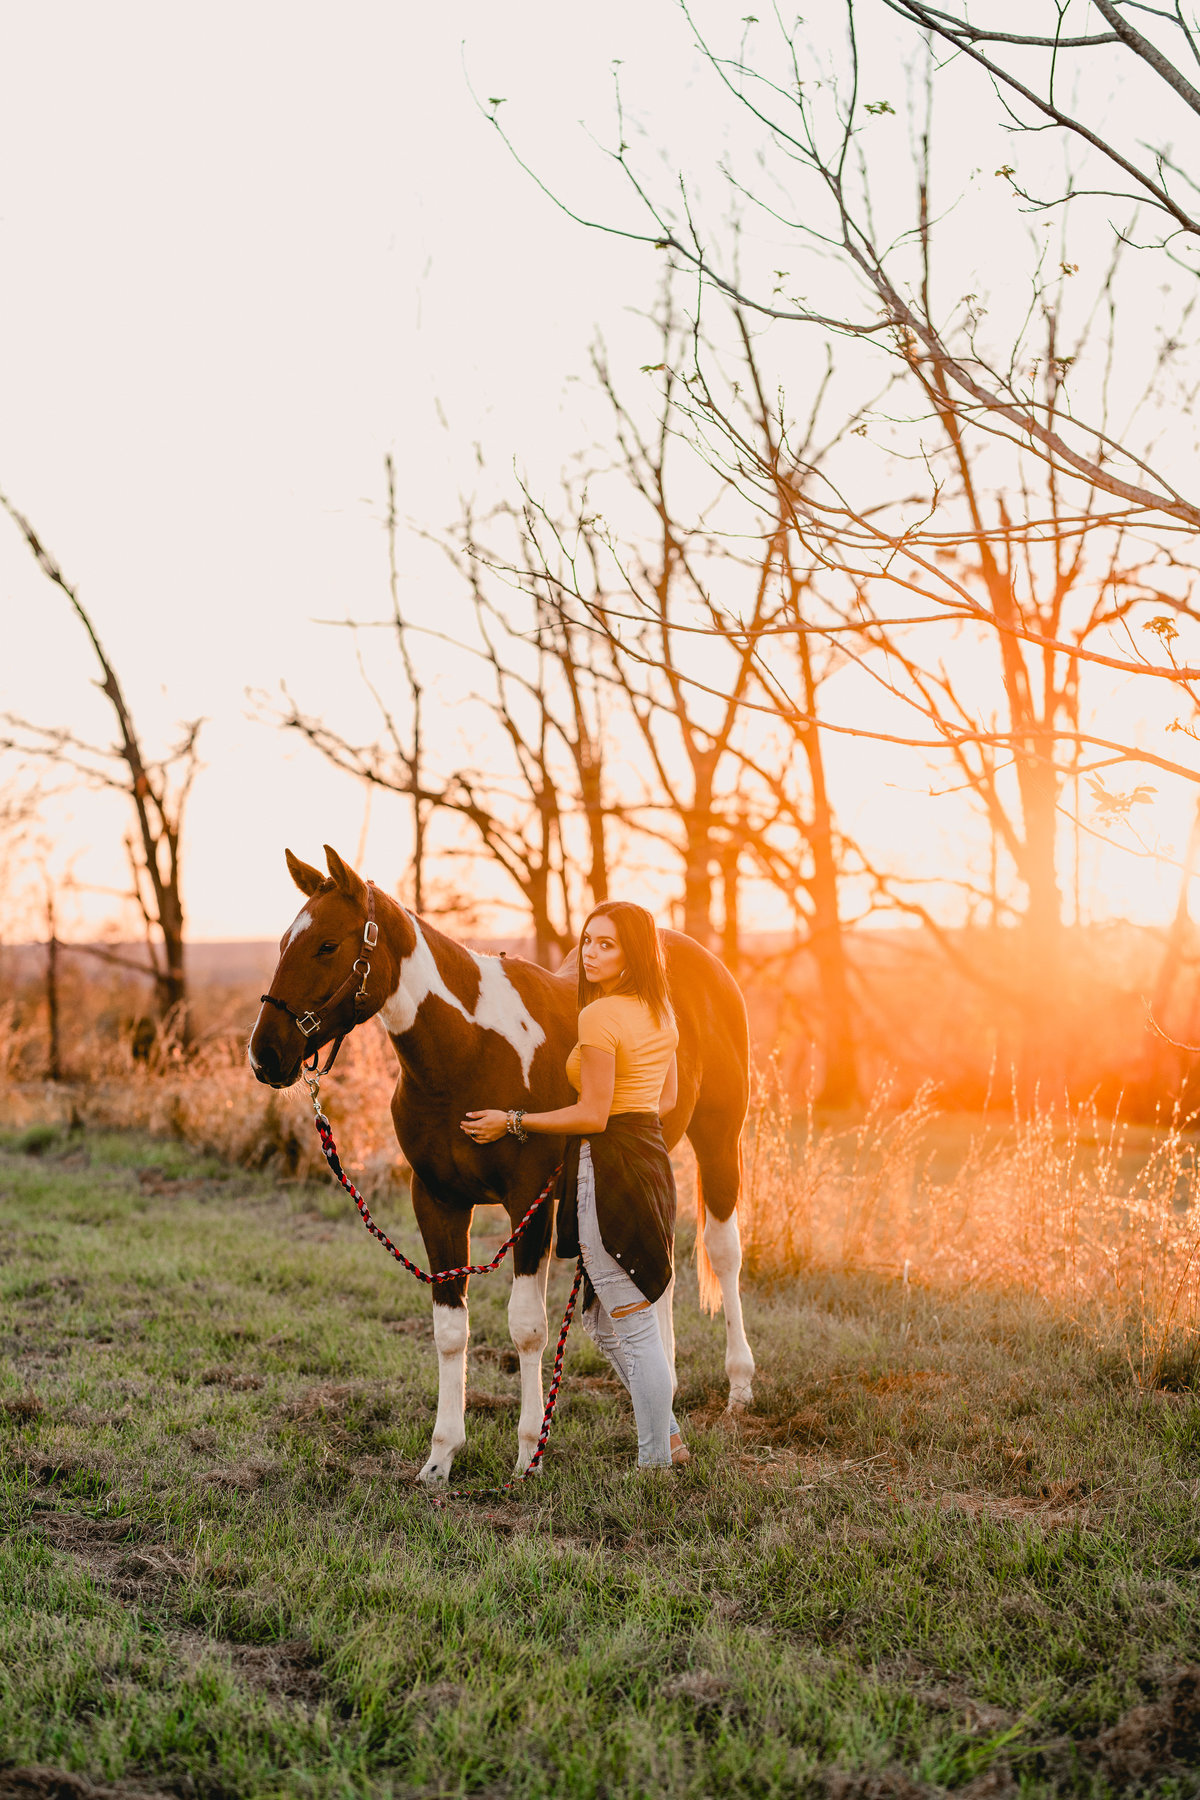 Sunset photographer specializing in natural light with horses in Florida.